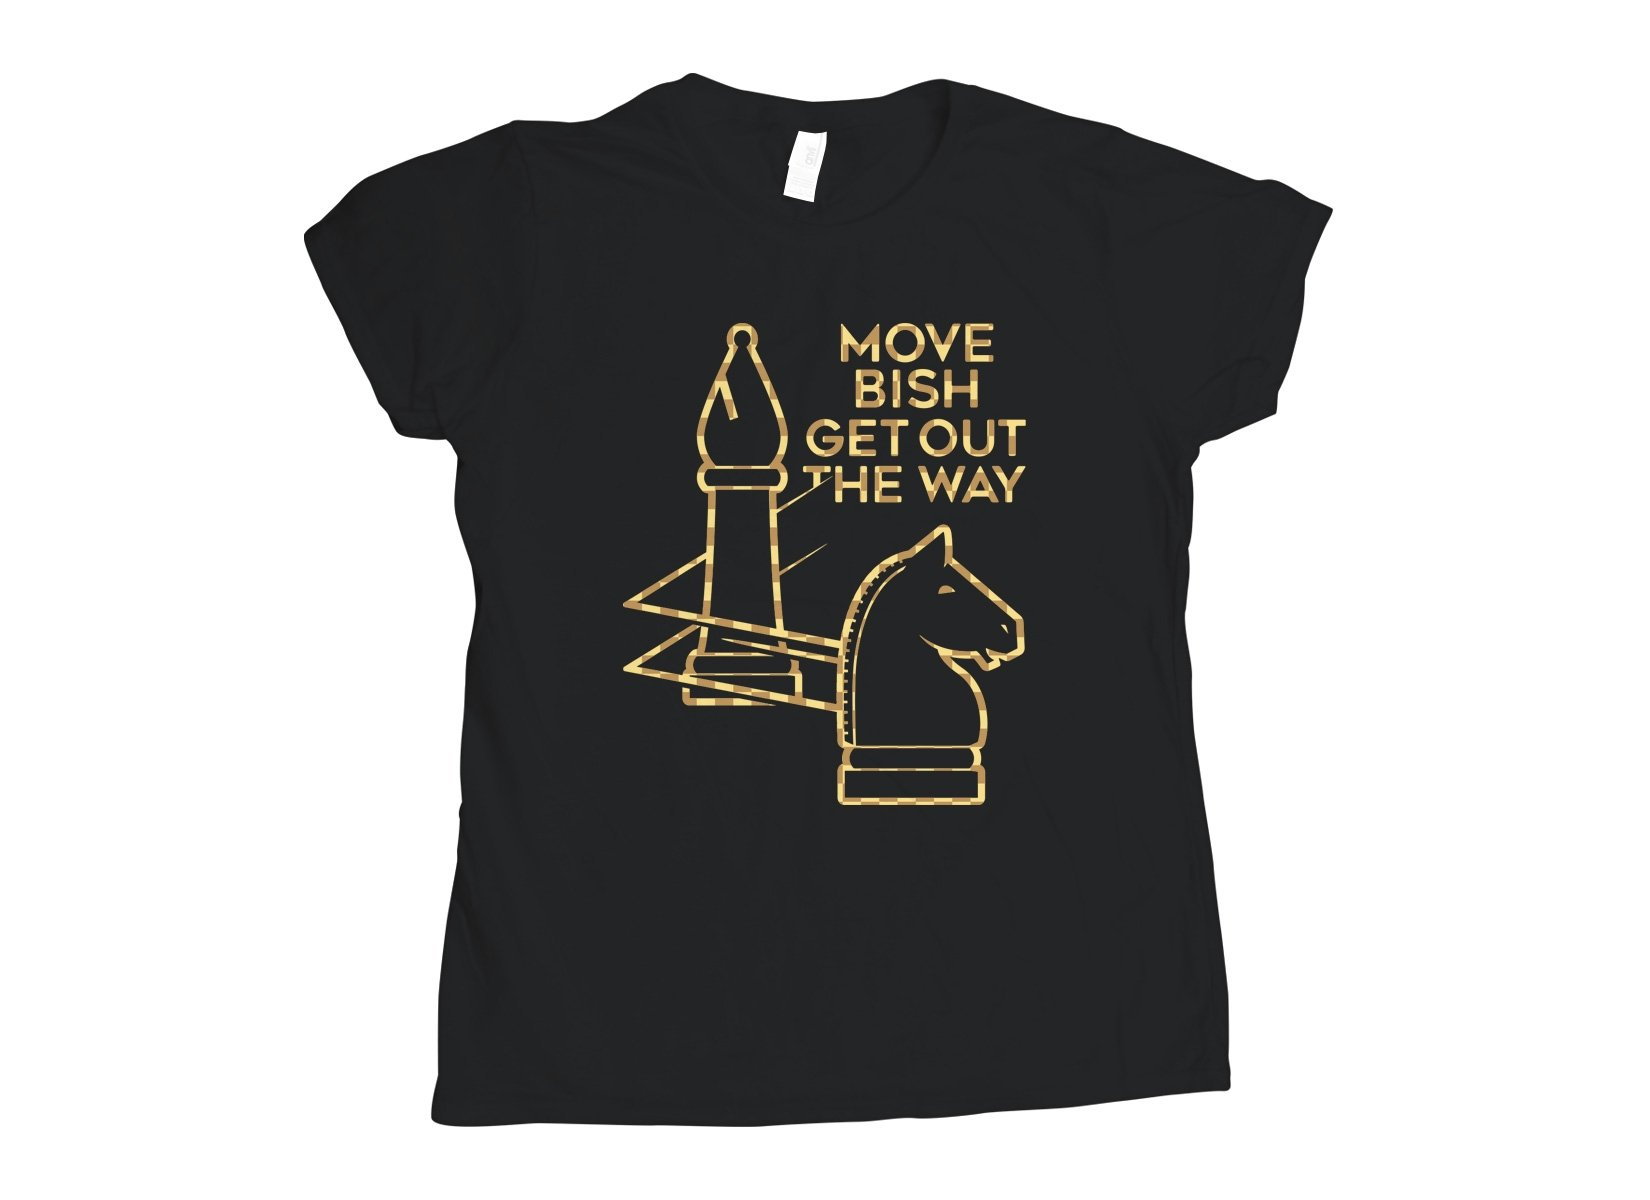 Move Bish Get Out The Way on Womens T-Shirt